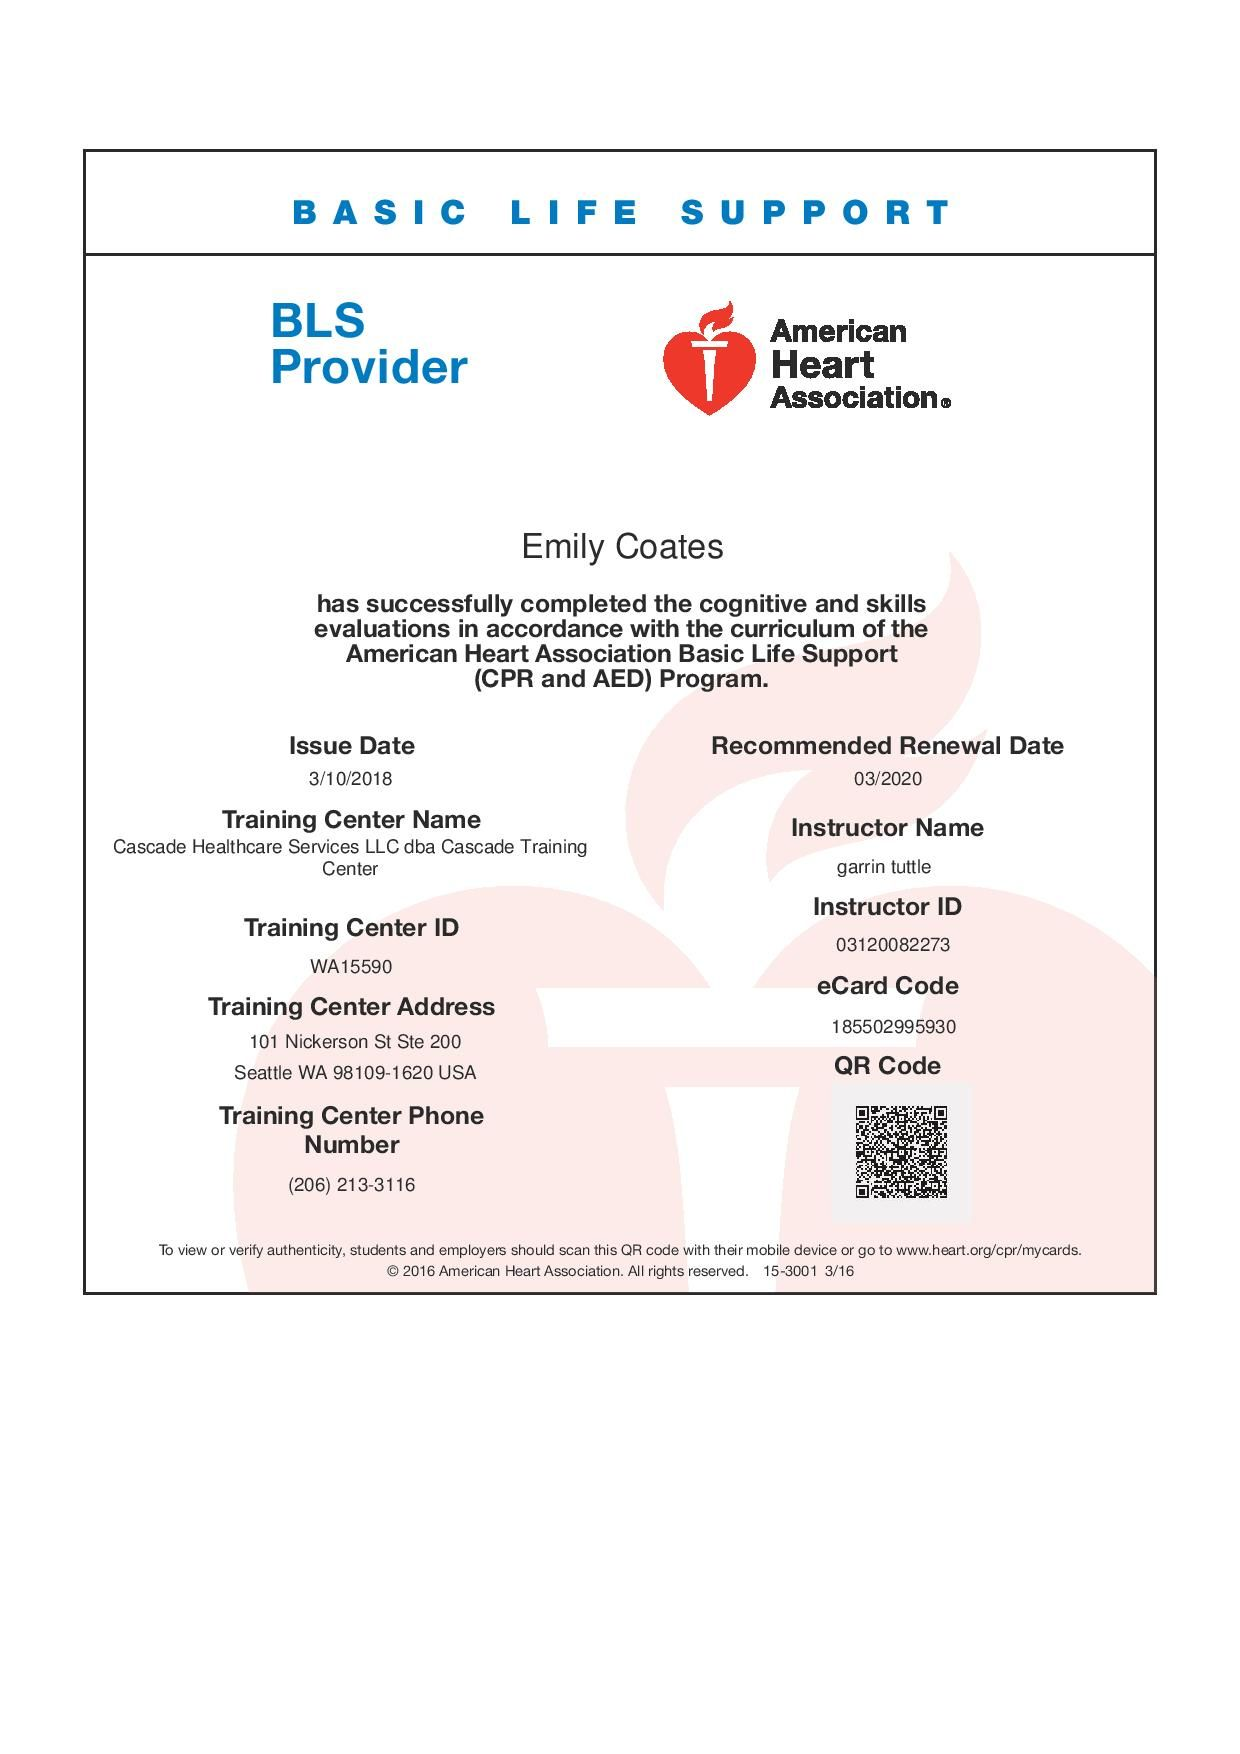 bls basic support heart association midwife assistant exp certification